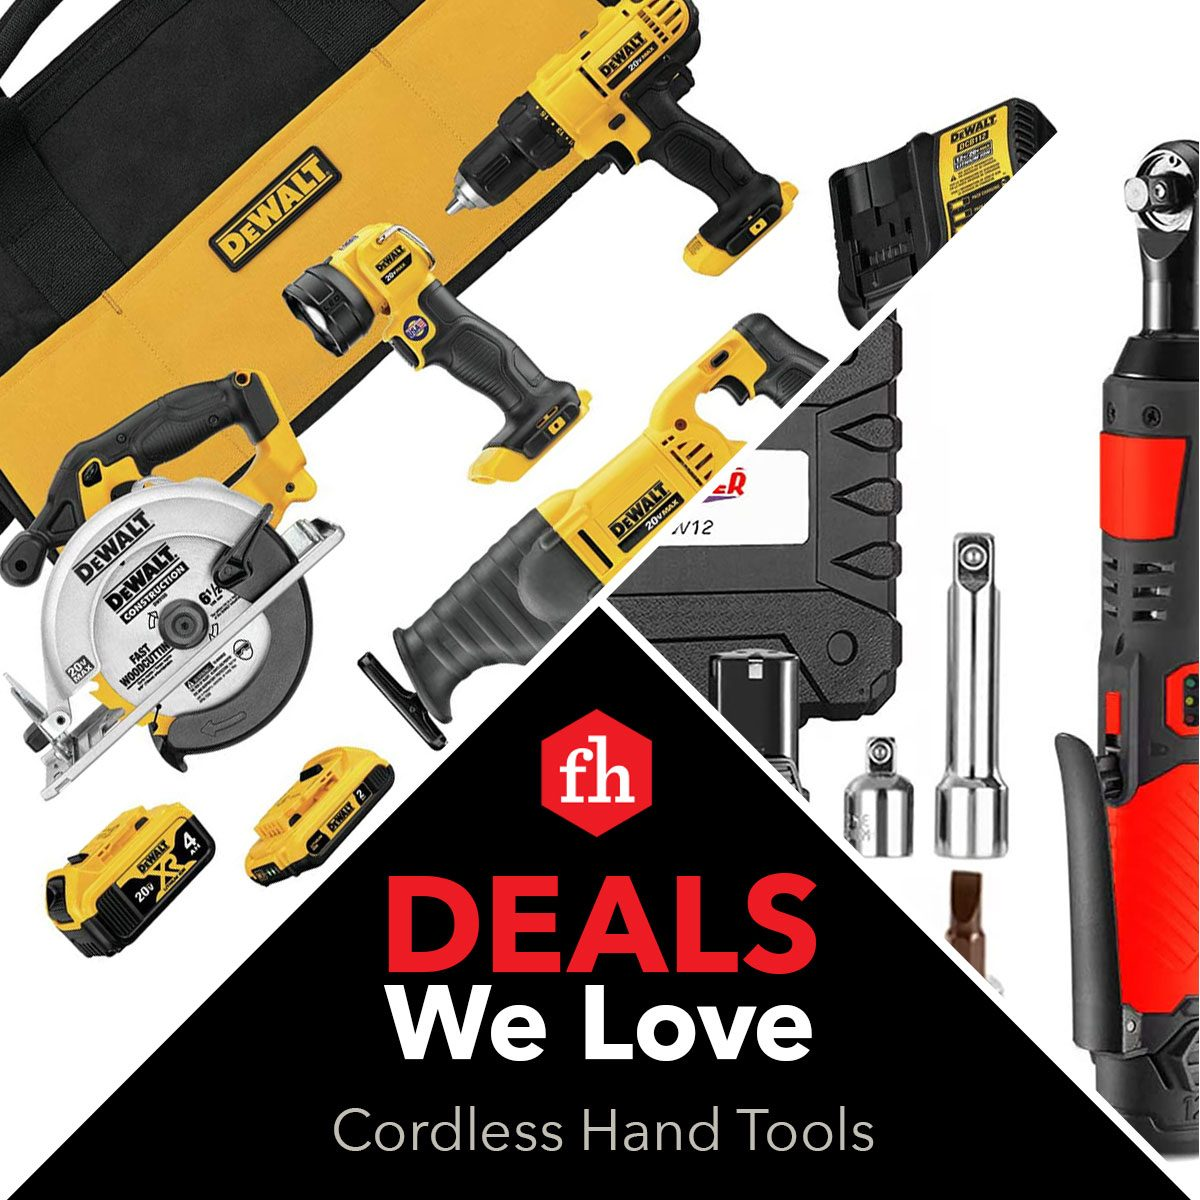 Confused About Which Tools to Buy? Check Out Our Guide! - cover